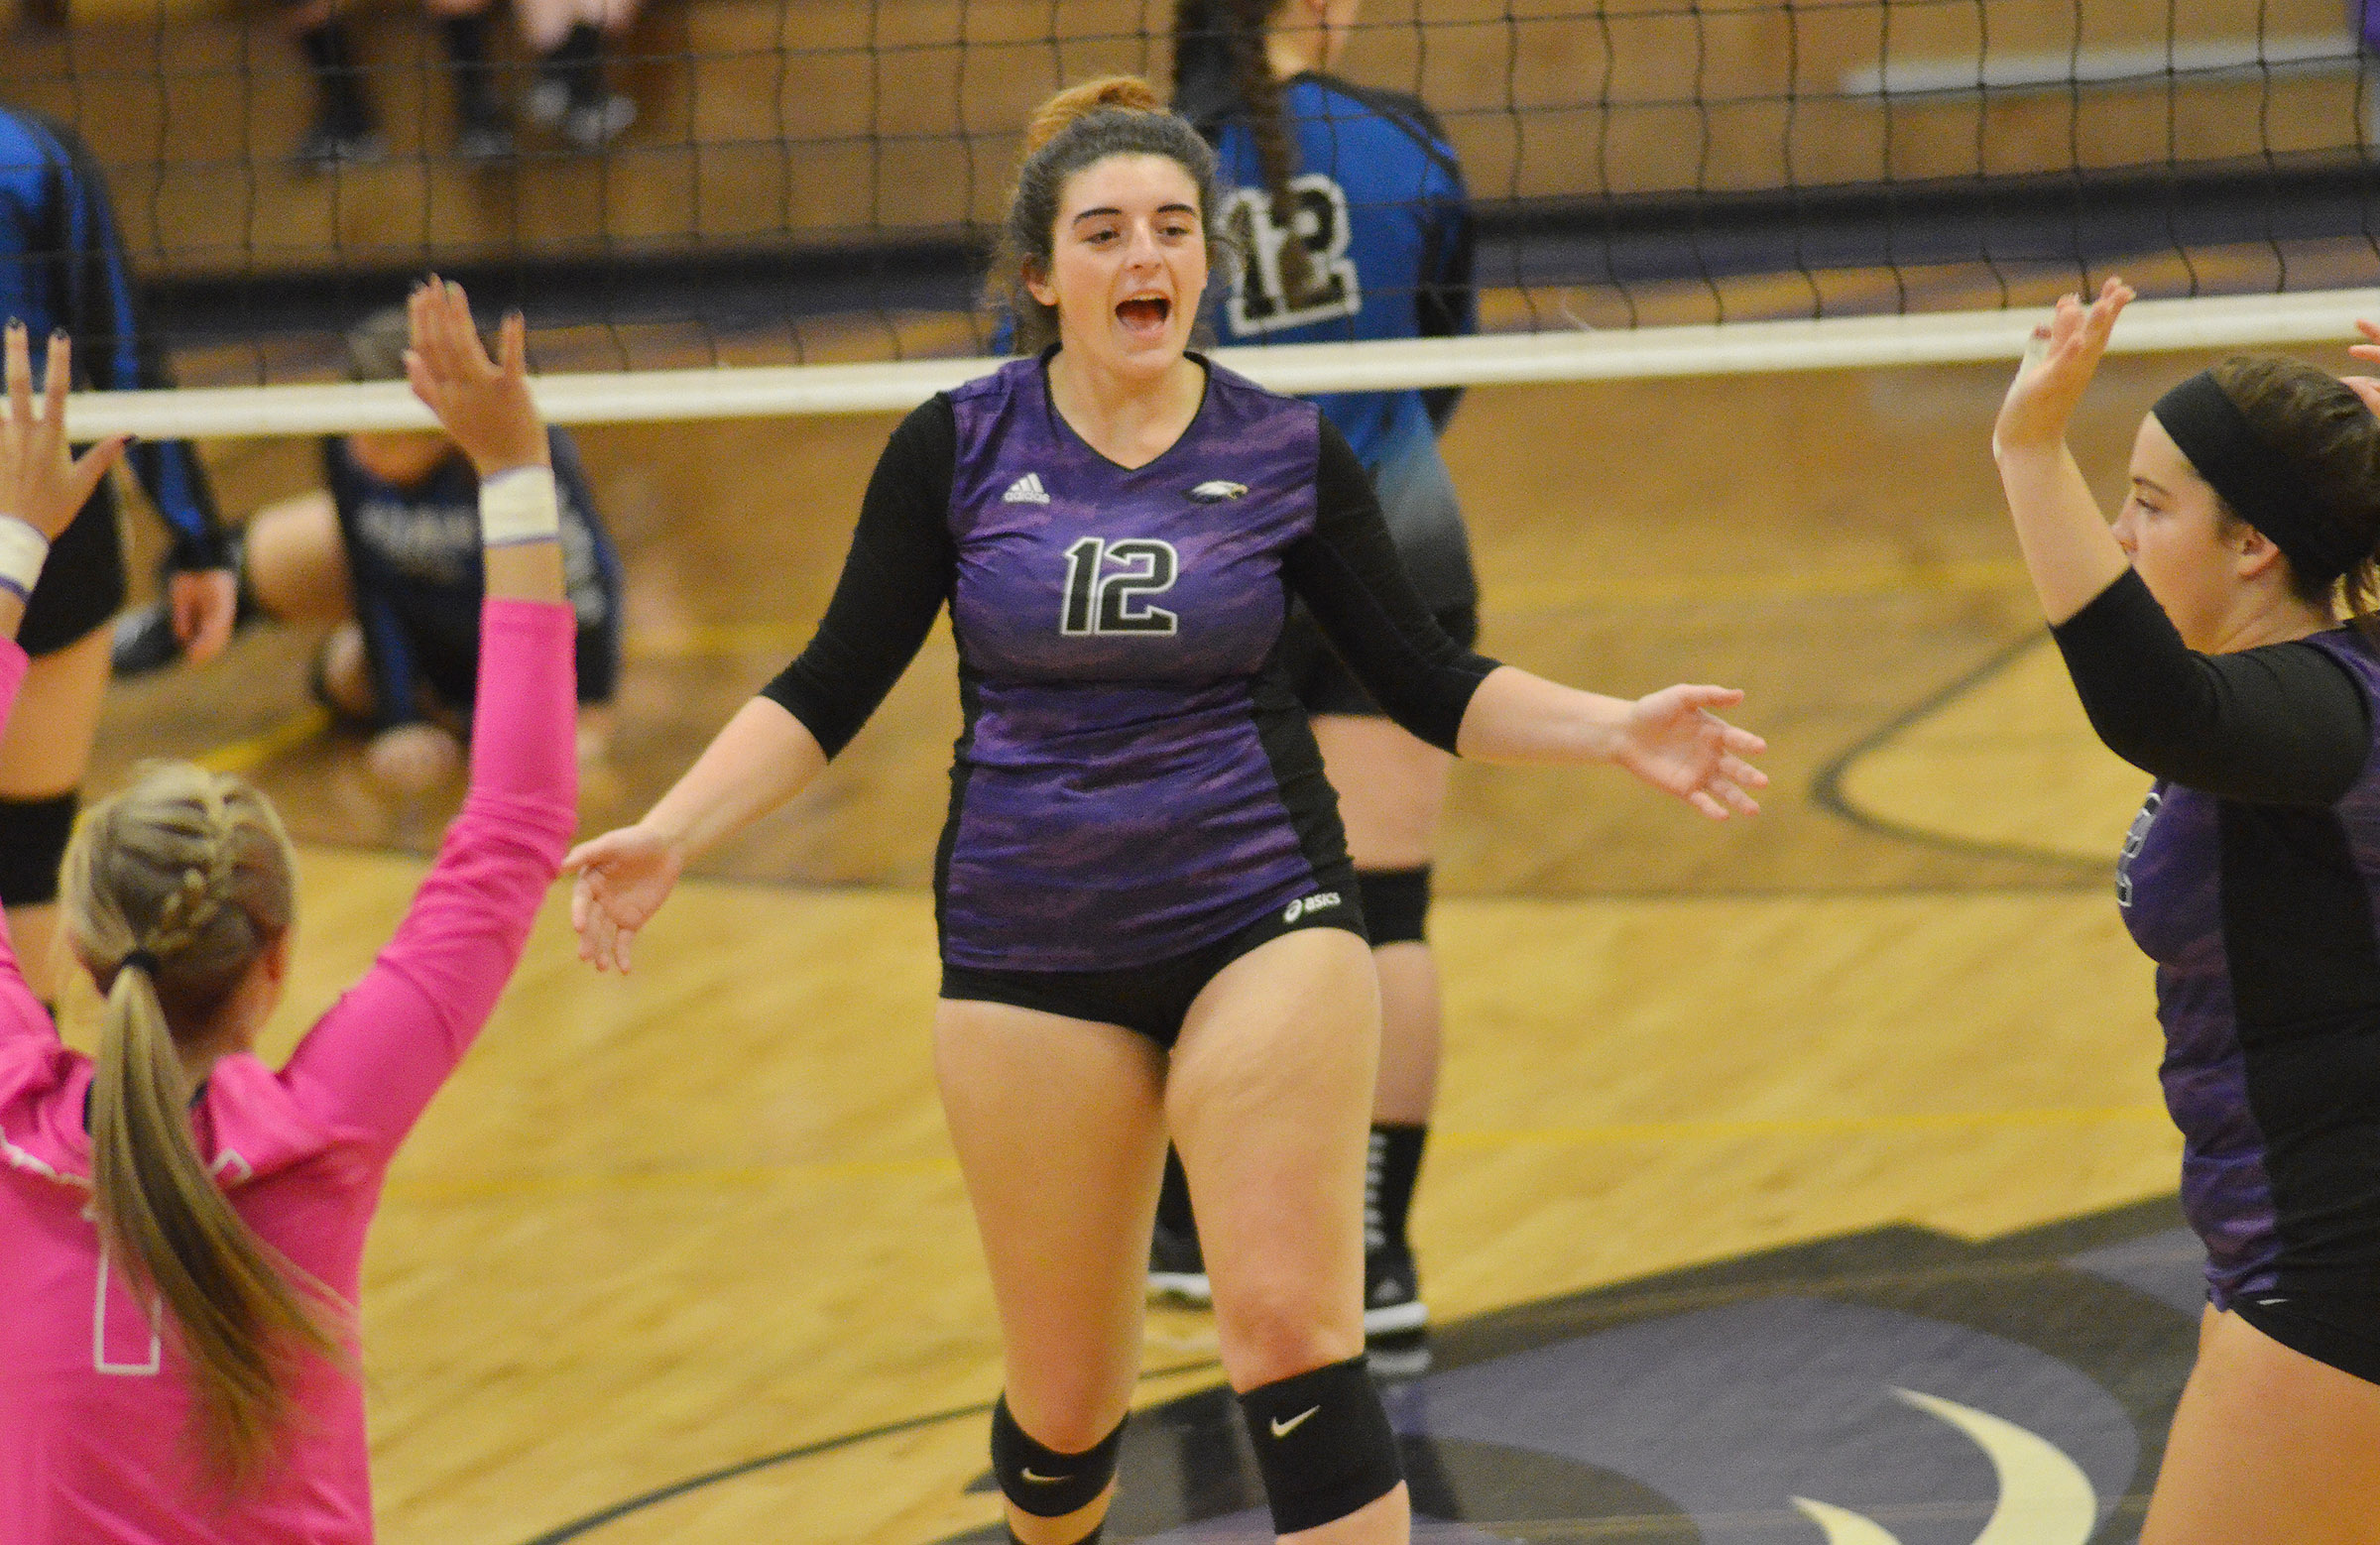 CHS senior Amanda Miles celebrates a point.